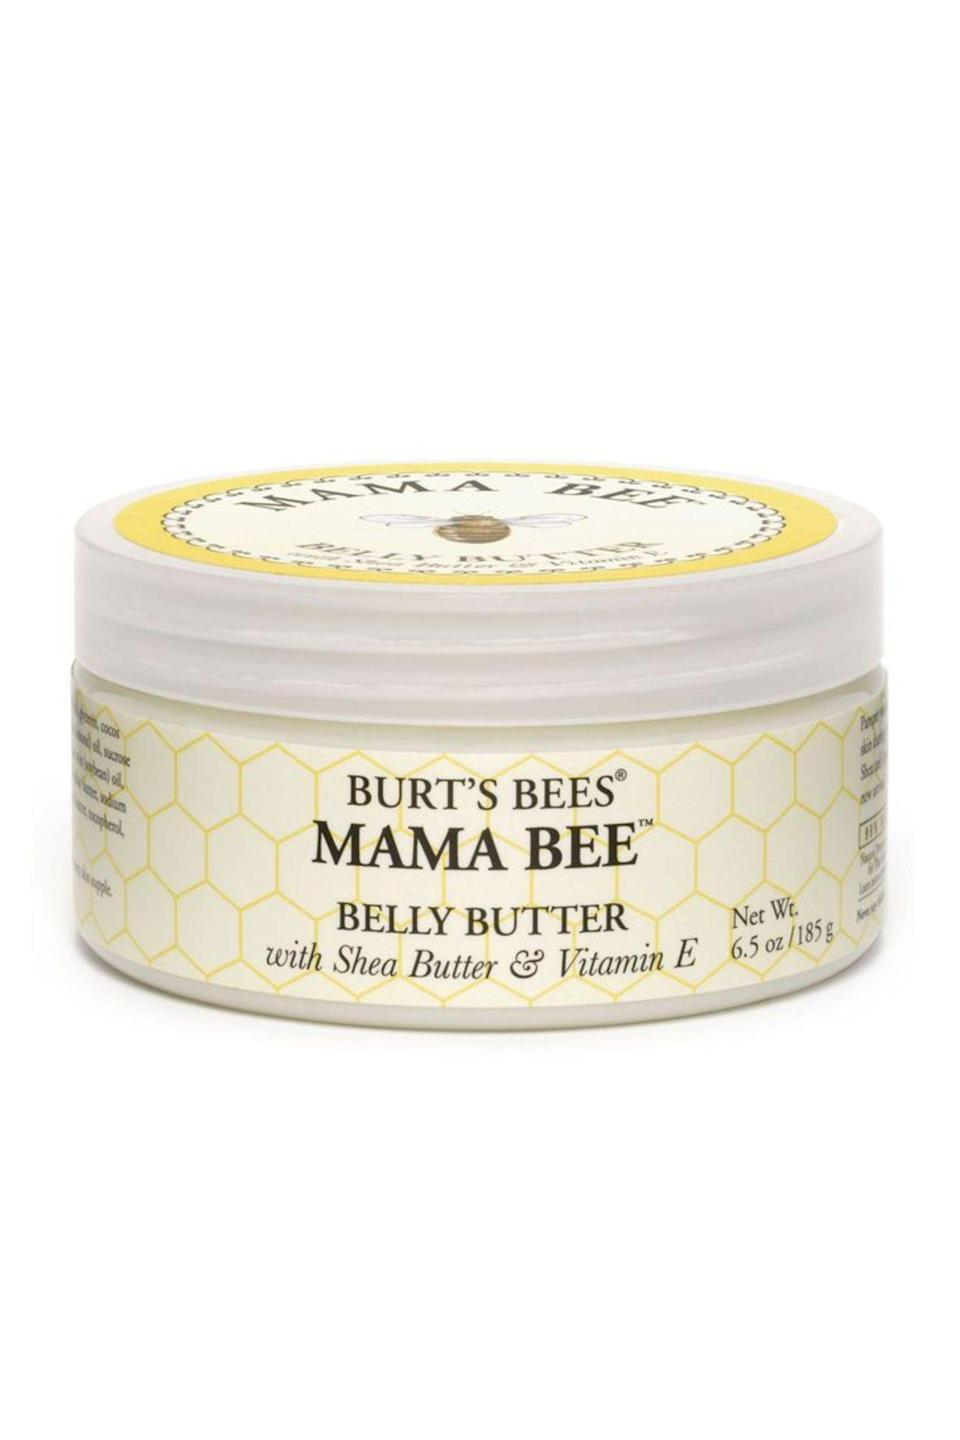 """<p><strong>Burt's Bees</strong></p><p>amazon.com</p><p><a href=""""https://www.amazon.com/Burts-Bees-Butter-Butter-Vitamin/dp/B00DM14TYC/?tag=syn-yahoo-20&ascsubtag=%5Bartid%7C10049.g.23323942%5Bsrc%7Cyahoo-us"""" rel=""""nofollow noopener"""" target=""""_blank"""" data-ylk=""""slk:Shop Now"""" class=""""link rapid-noclick-resp"""">Shop Now</a></p><p>If you're a sucker for a good product testimonial, you'll want to make this fragrance-free belly butter with <strong>an overall 4.2 star rating on Ulta </strong>your next purchase. A blend of butters (shea and cocoa) with a mix of oils (<a href=""""https://www.cosmopolitan.com/style-beauty/beauty/a27305882/coconut-oil-benefits-skin/"""" rel=""""nofollow noopener"""" target=""""_blank"""" data-ylk=""""slk:coconut"""" class=""""link rapid-noclick-resp"""">coconut</a>, sunflower, sweet almond, <a href=""""https://www.cosmopolitan.com/style-beauty/beauty/a34221629/jojoba-oil-for-hair/"""" rel=""""nofollow noopener"""" target=""""_blank"""" data-ylk=""""slk:jojoba"""" class=""""link rapid-noclick-resp"""">jojoba</a>, and soybean) and vitamin E all combine moisturizing forces to leave the skin feeling insanely hydrated.</p>"""